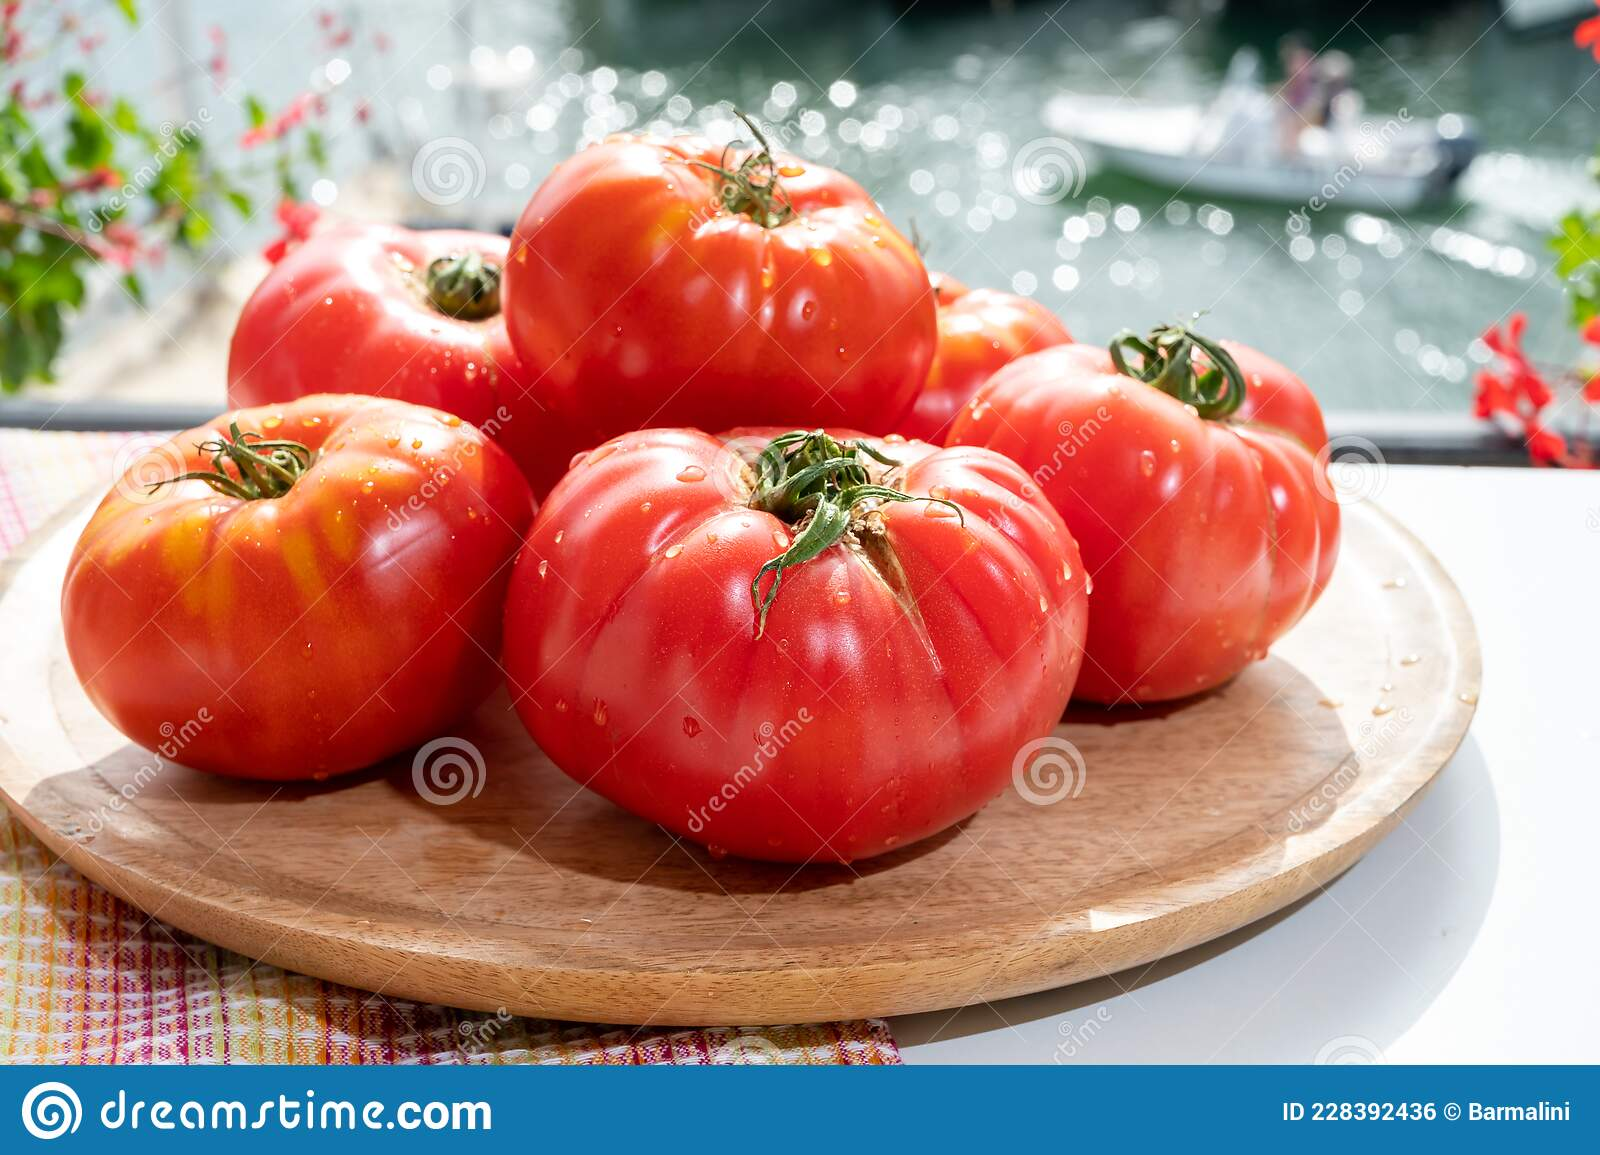 18+ Tasty Big Ripe French Tomatoes From Provence Ready To Eat In ... Image